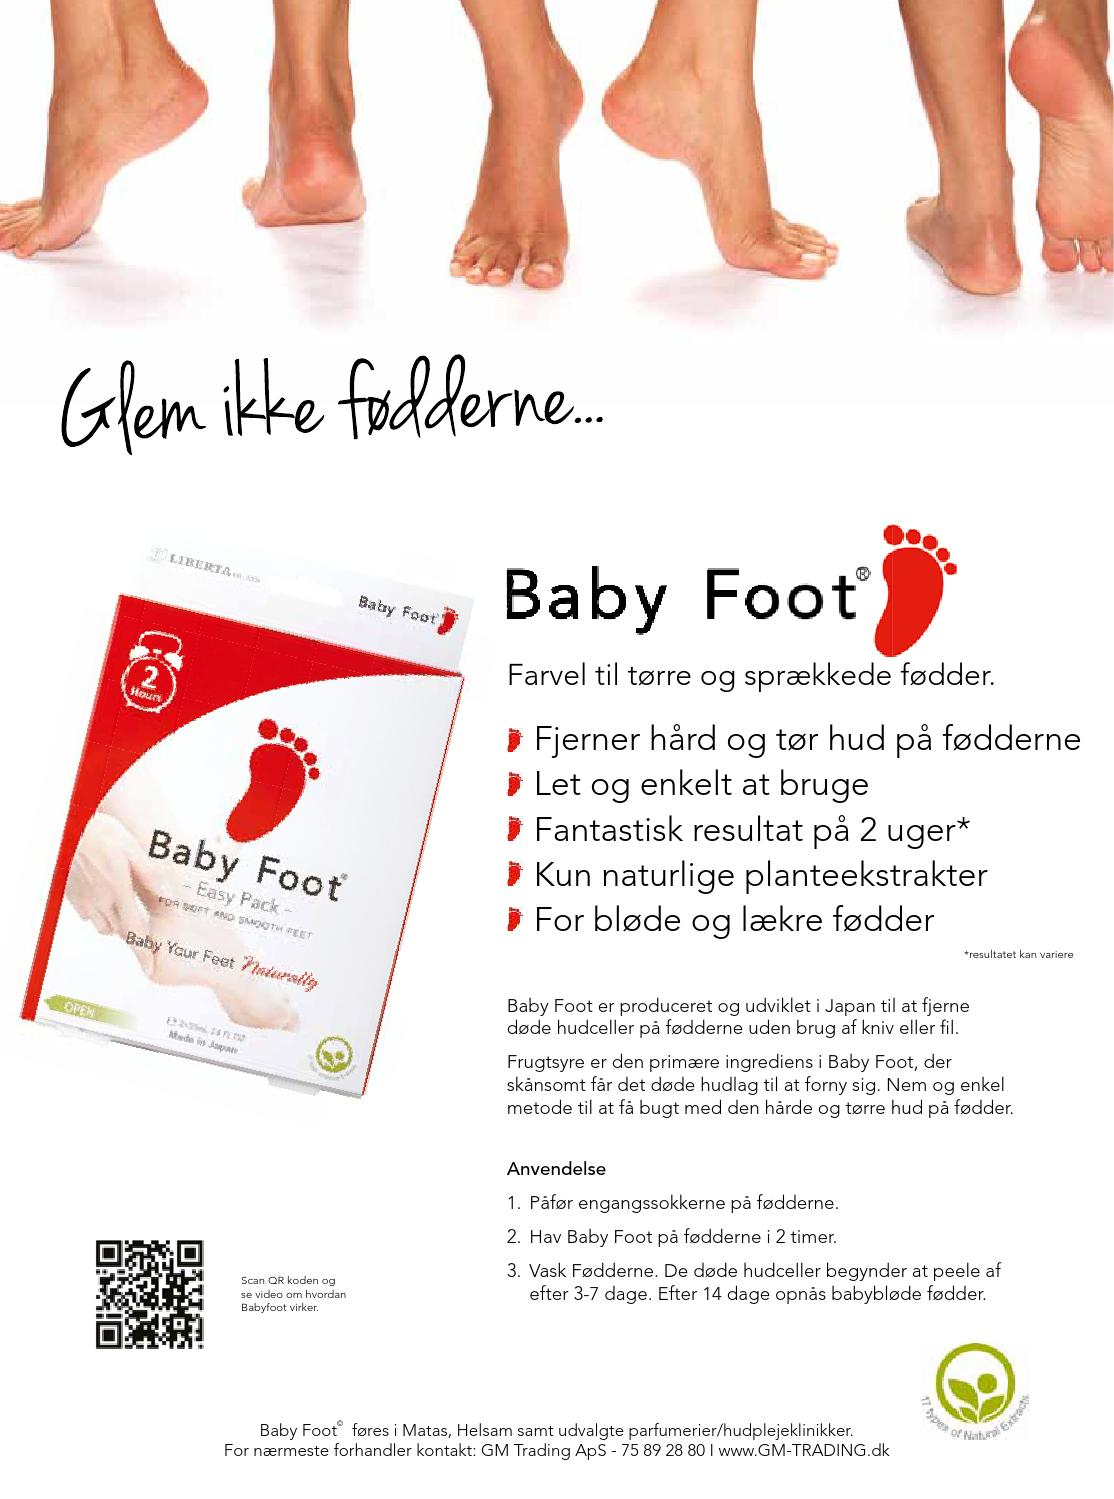 baby foot easy pack matas